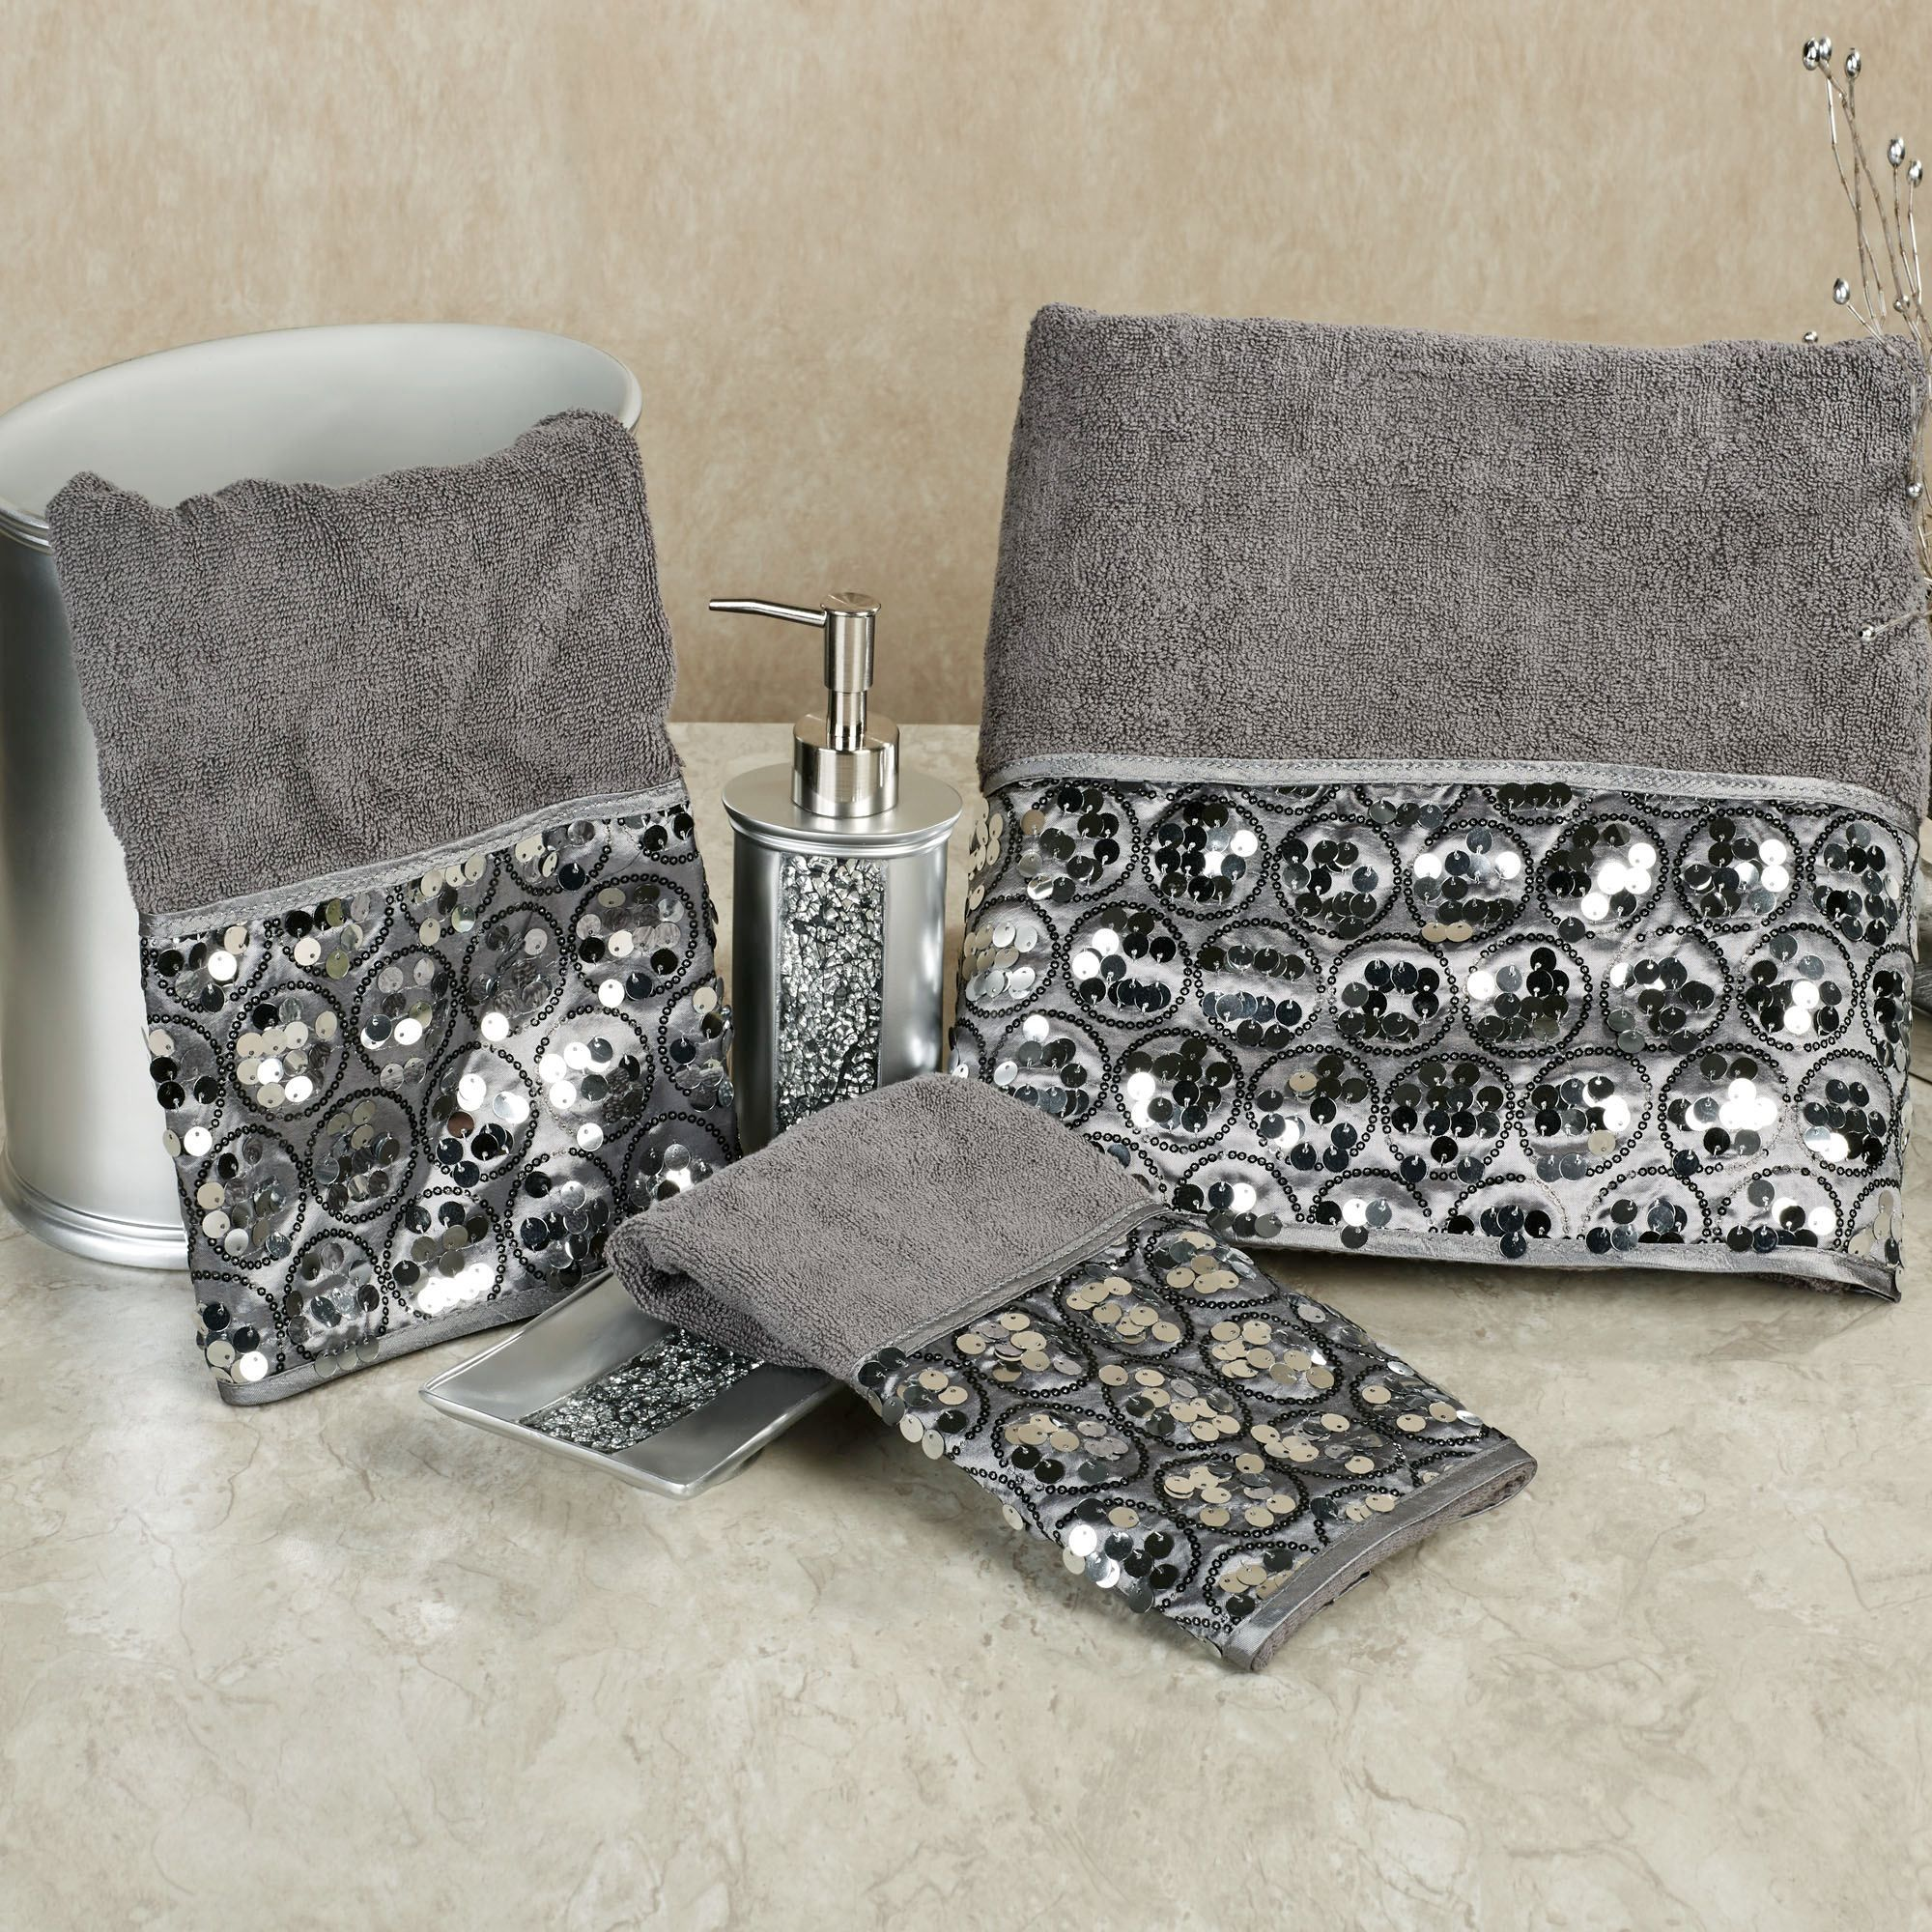 Ordinaire Bathroom Towels And Accessories